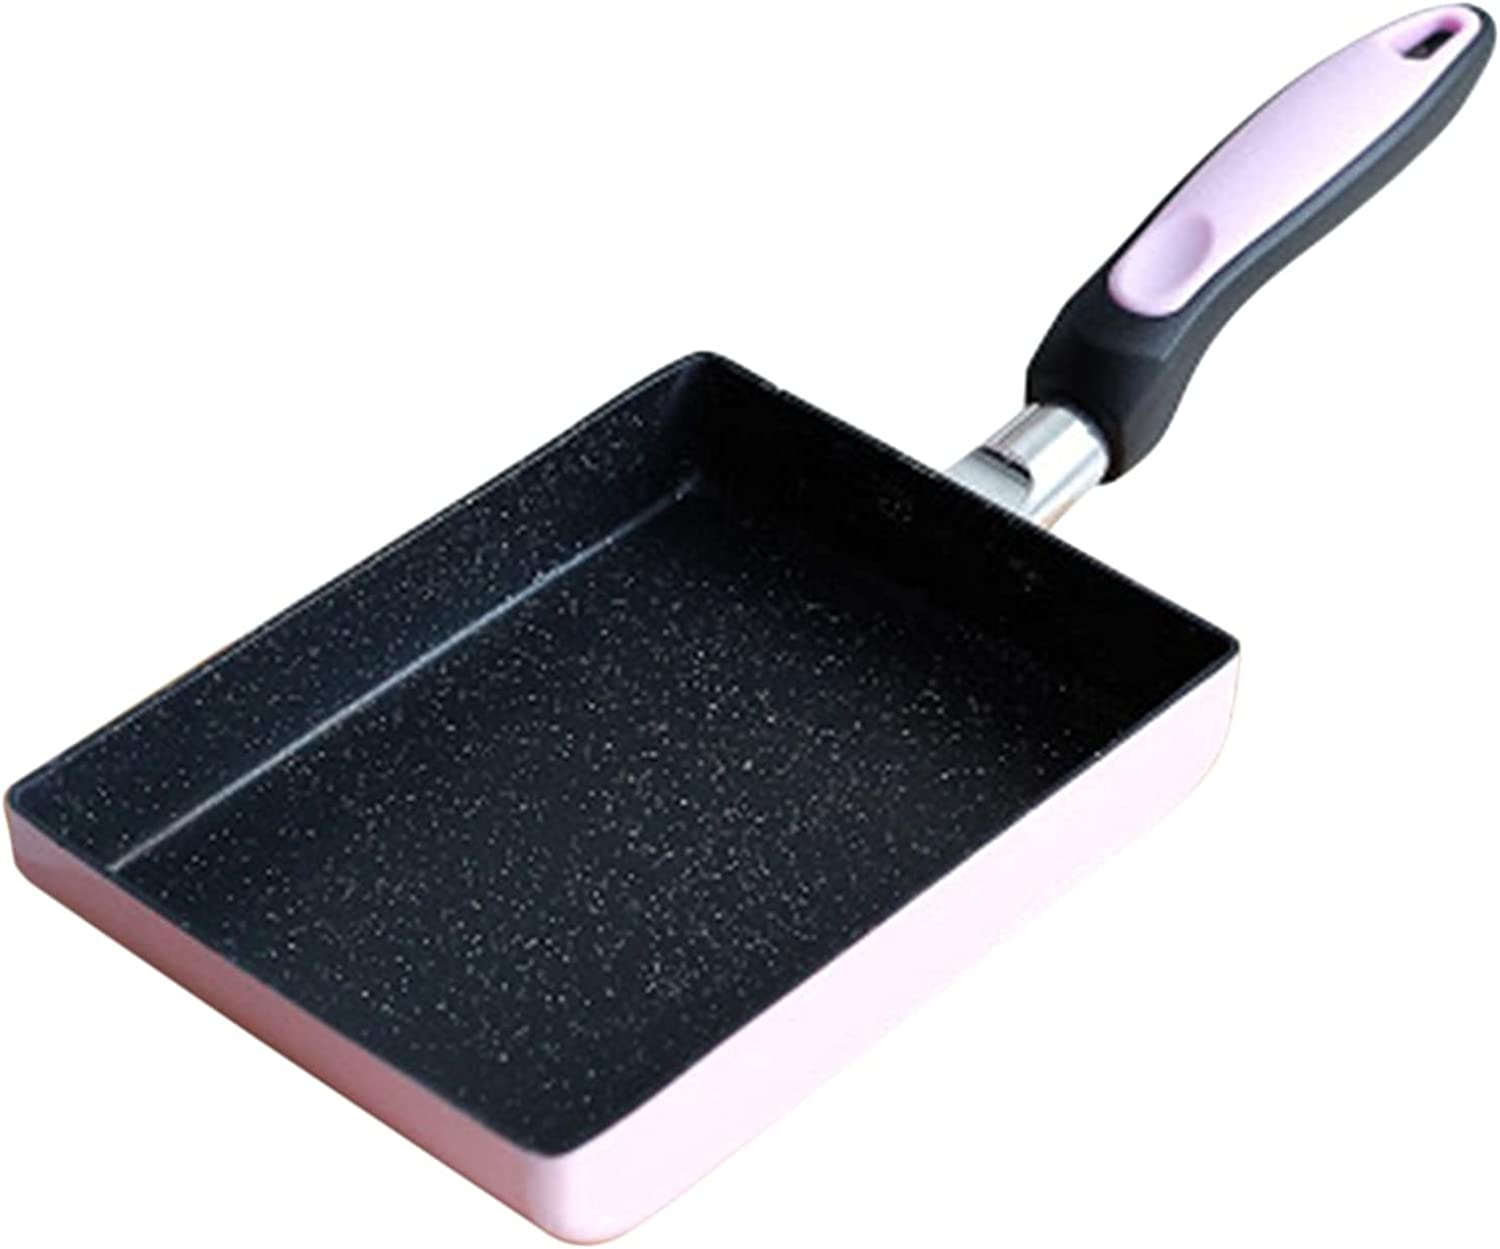 Winwinfly Memphis Mall Nonstick Grill Pan SALENEW very popular for Square Top Deep Griddle Stove